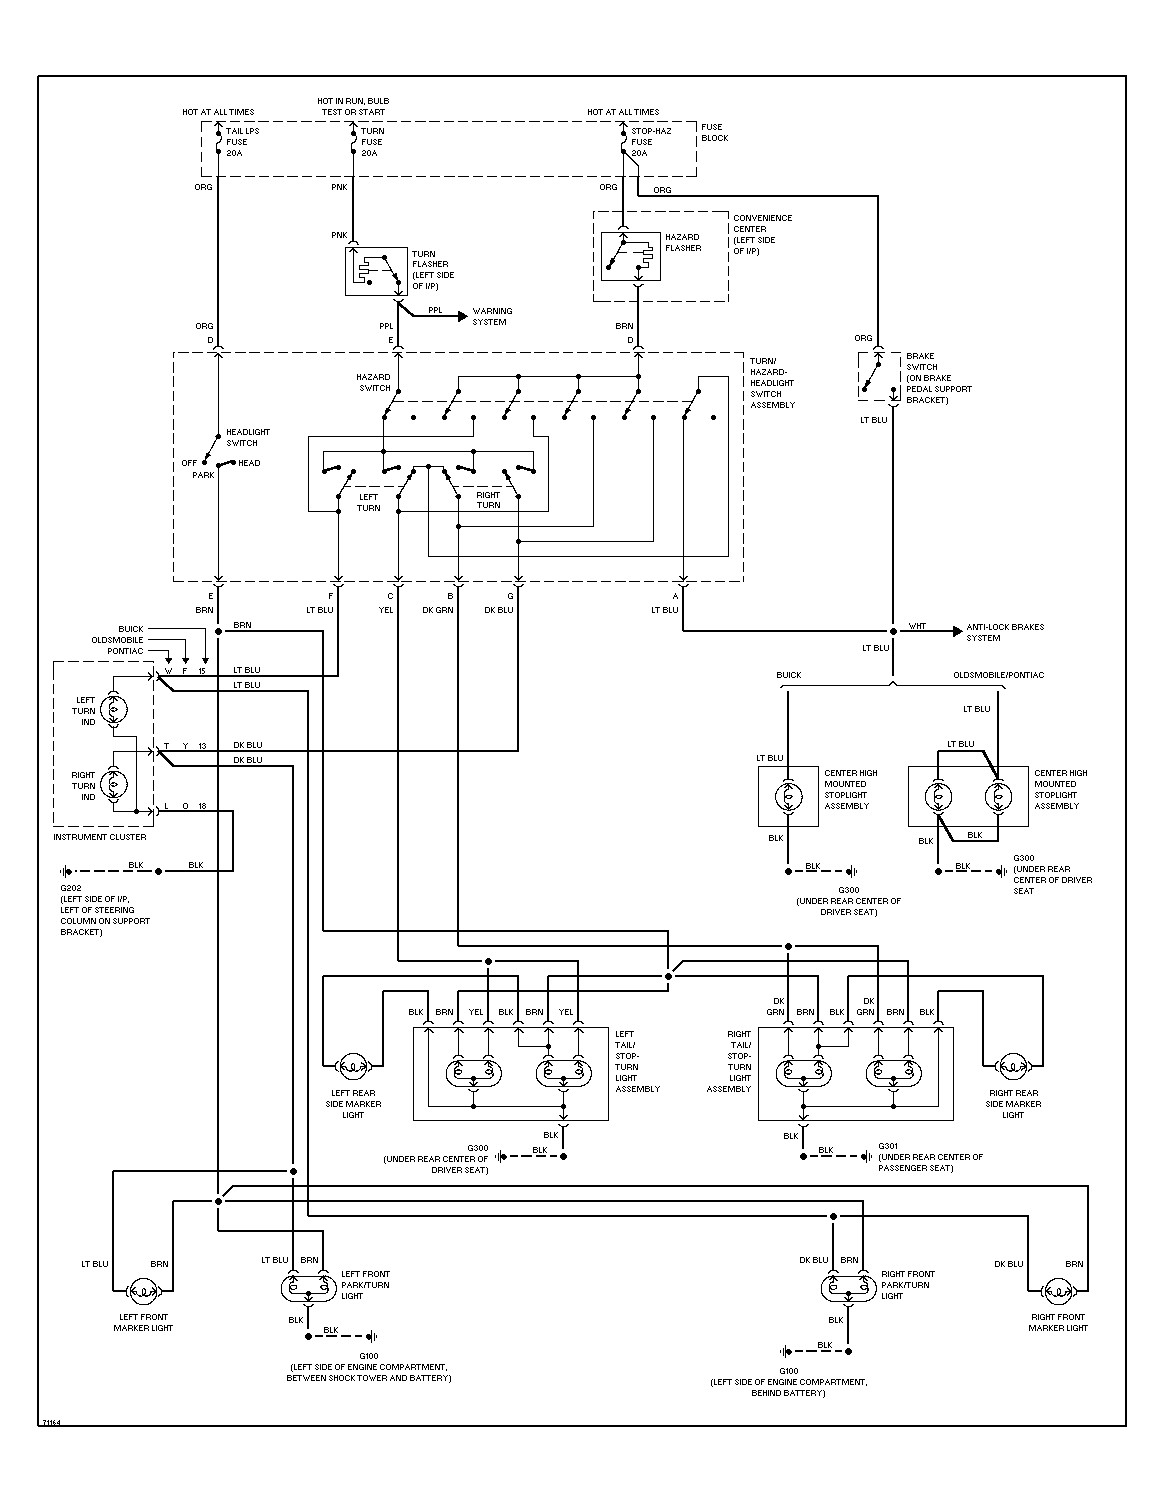 [DIAGRAM] 2001 Pontiac Grand Am Radio Wiring Diagram FULL